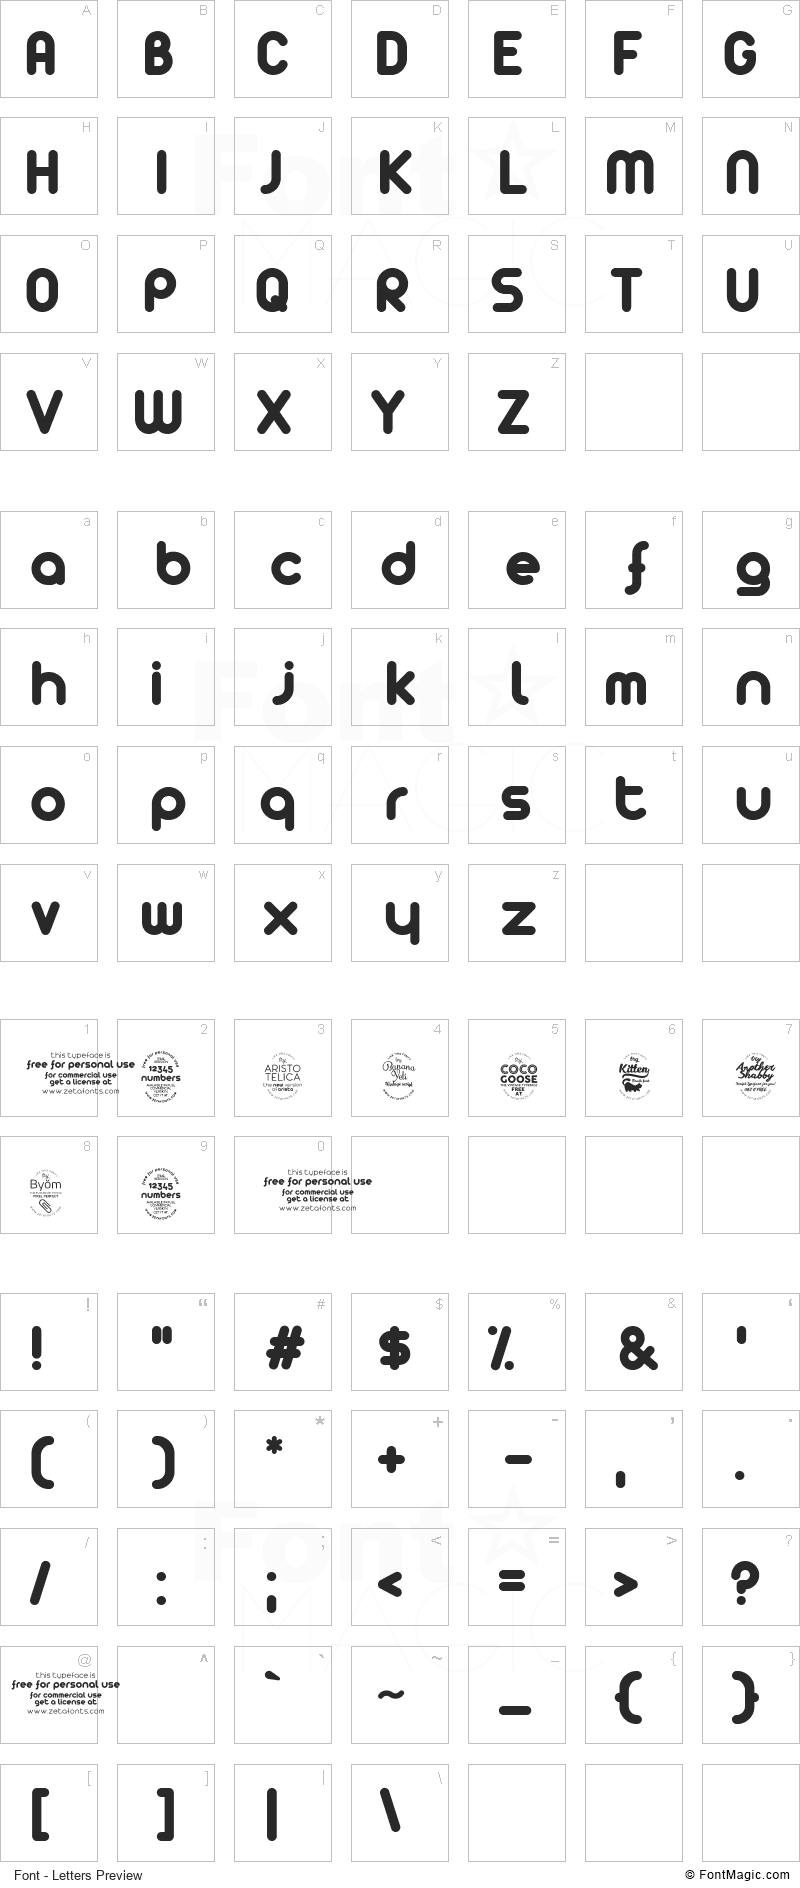 [z] Arista Font - All Latters Preview Chart